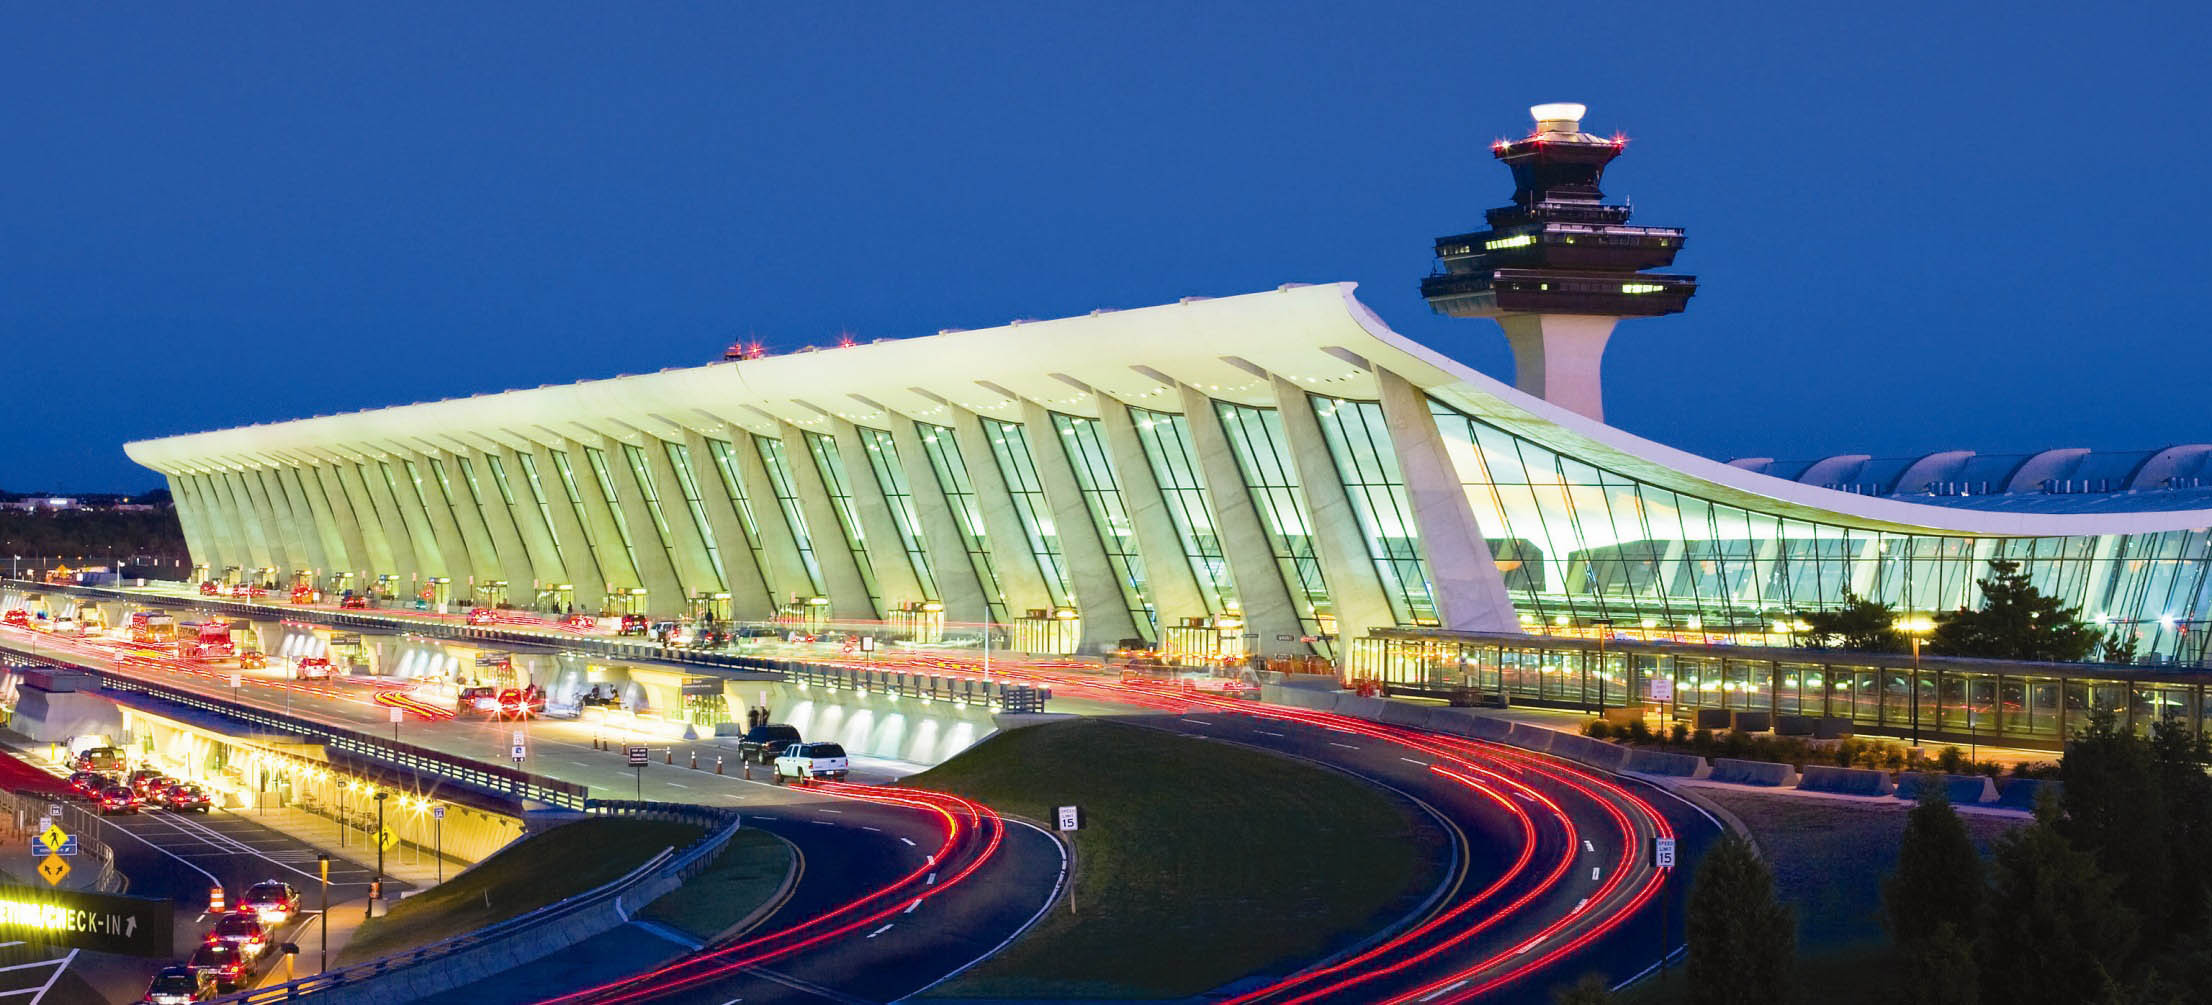 Dulles Main Terminal - Courtesy: Metropolitan Washington Airports Authority